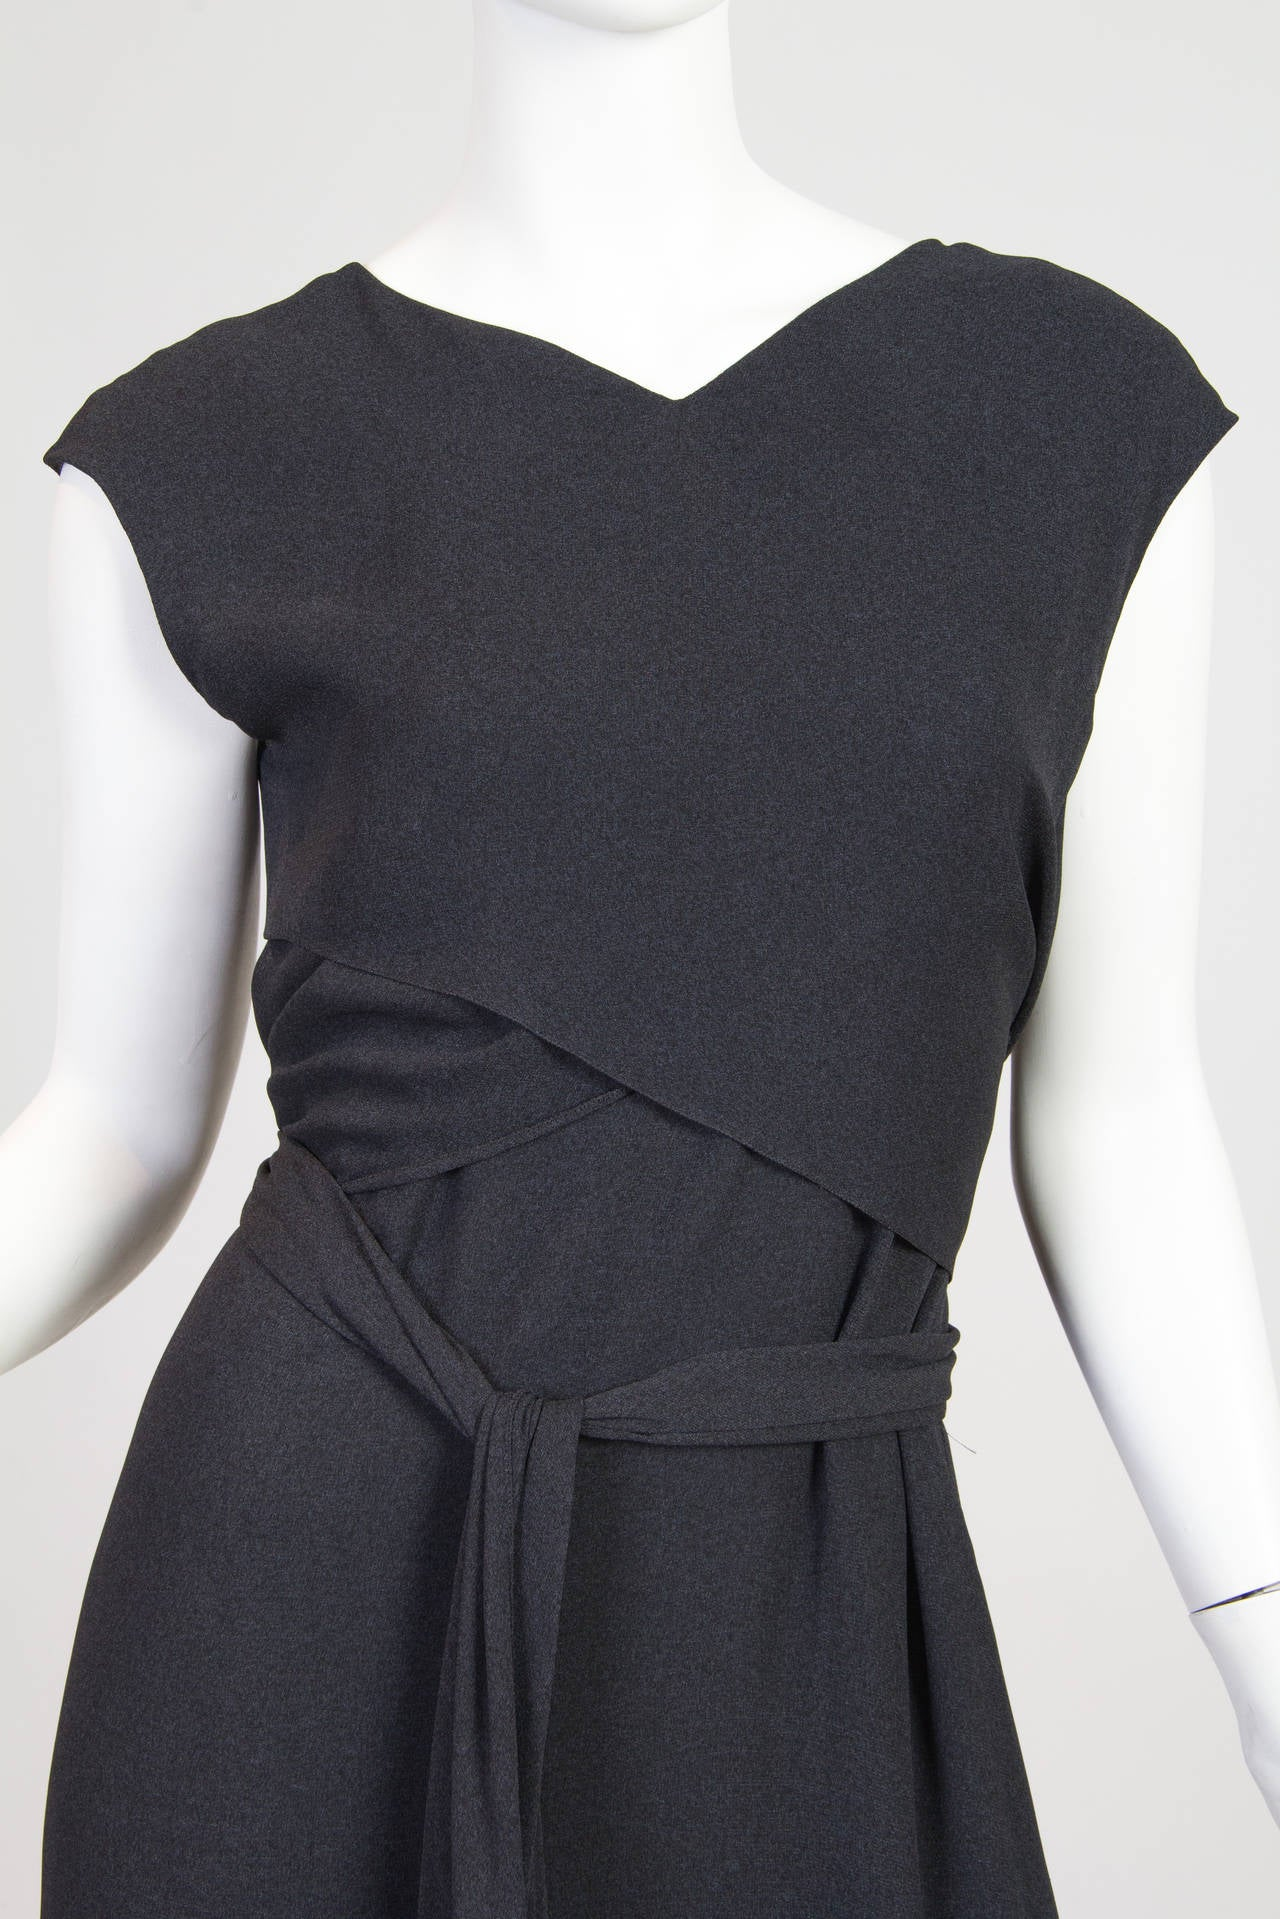 Slate Grey Crepe Dress from Chanel For Sale 1